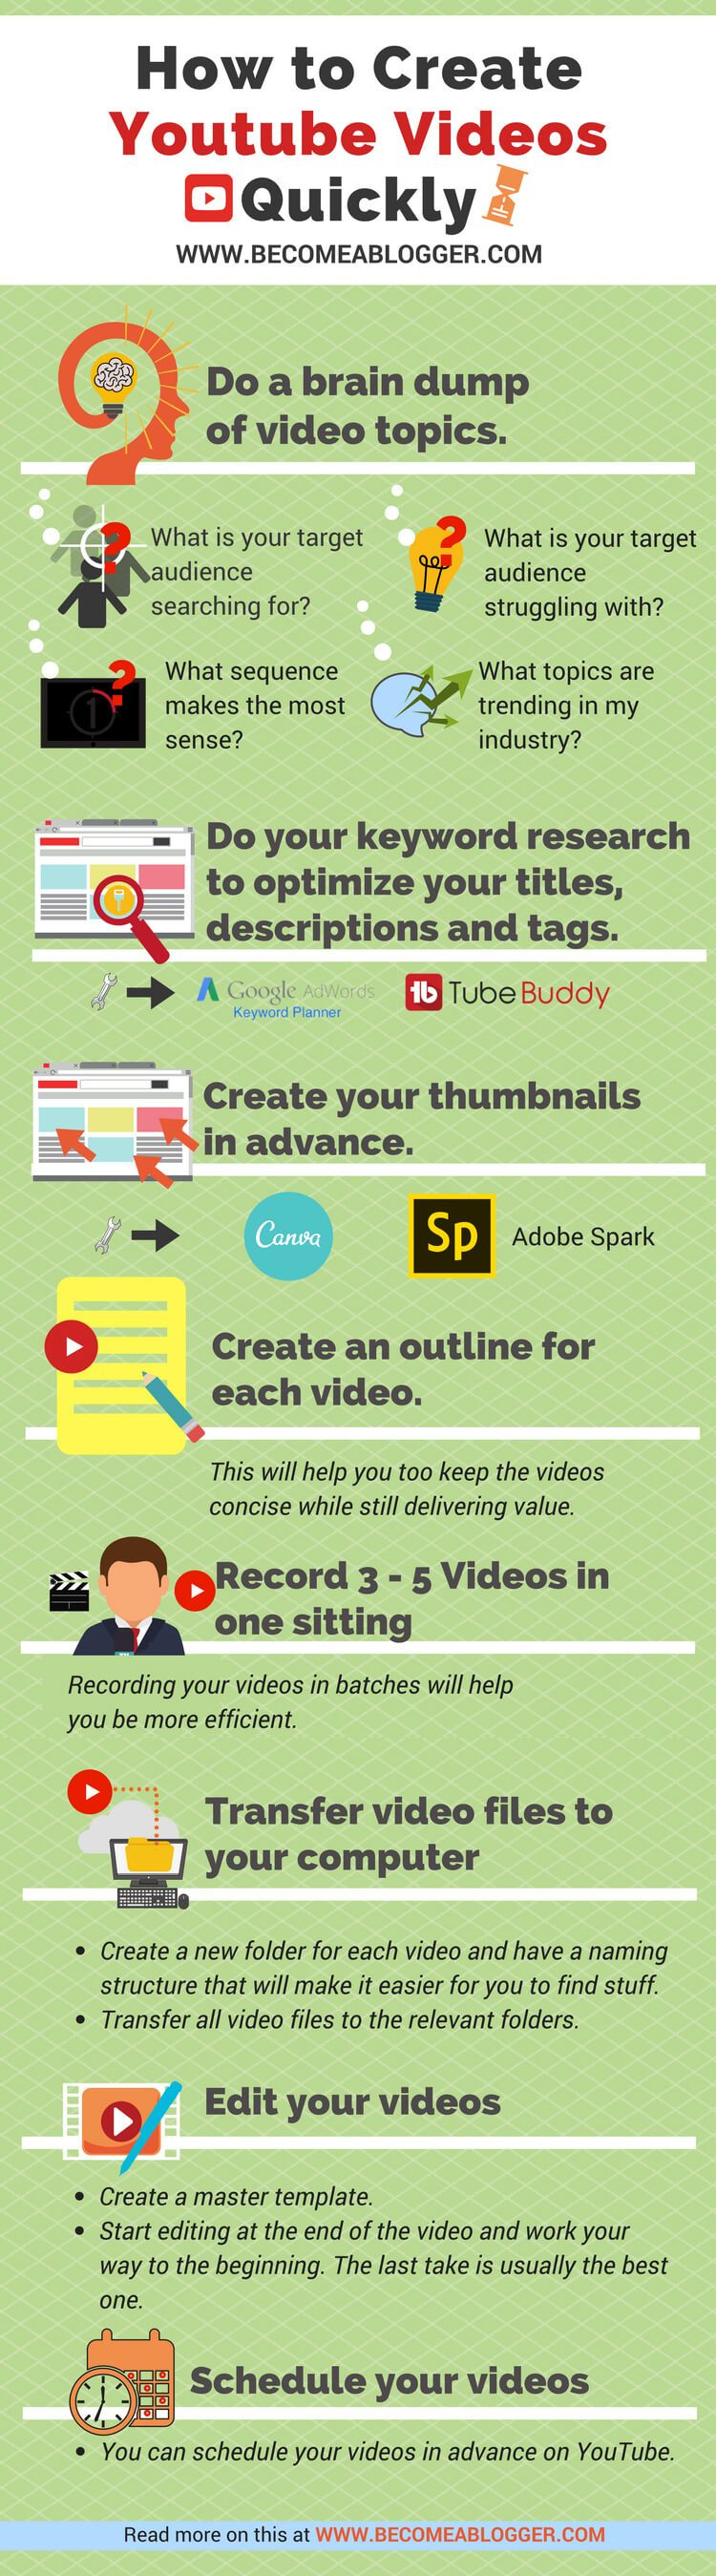 How to Create YouTube Videos Quickly